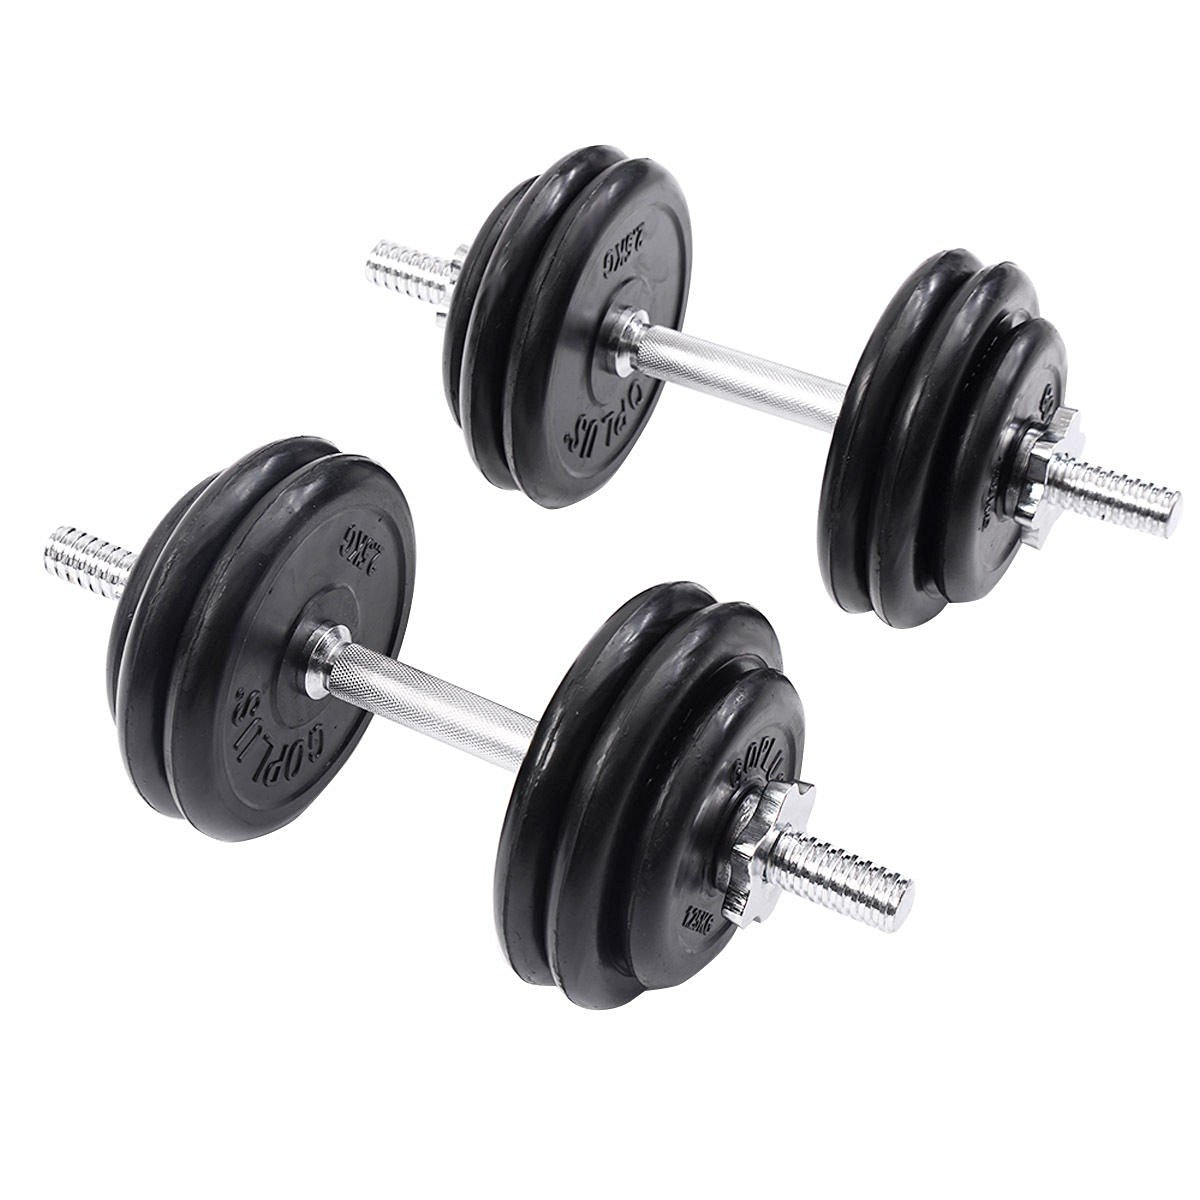 Weight Dumbbell Set 66 LB Adjustable Cap Gym Barbell Plates Body Workout - Suitable For Basic Toning And Strength Exercises - Bars Are Able To Connect Securely - Changeable Dumbbell Weight